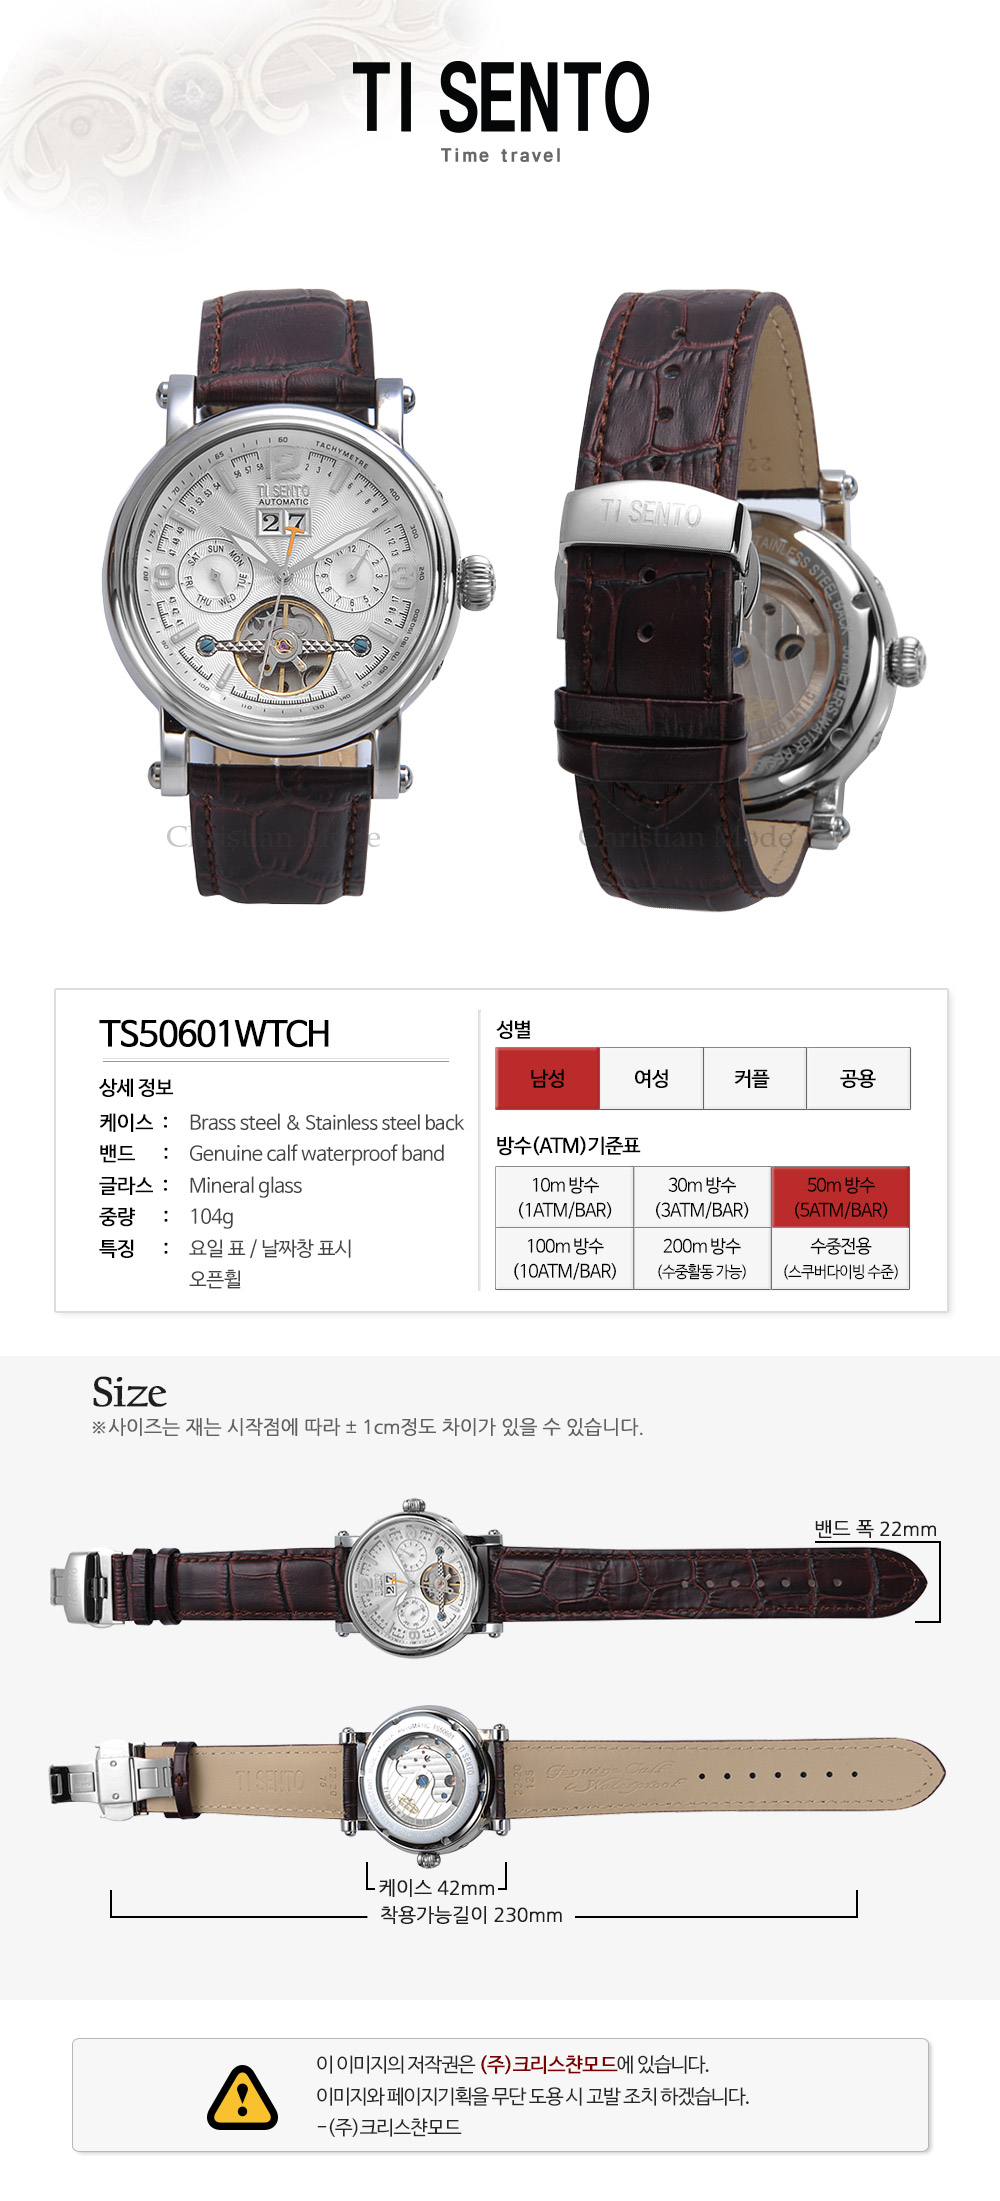 [ TISENTO ] KOREA MADE HIGH QUALITY AUTOMATIC MECHANICAL GENUINE CALF WATERPROOF LEATHER STRAP WATCH TS 50601 WTCH